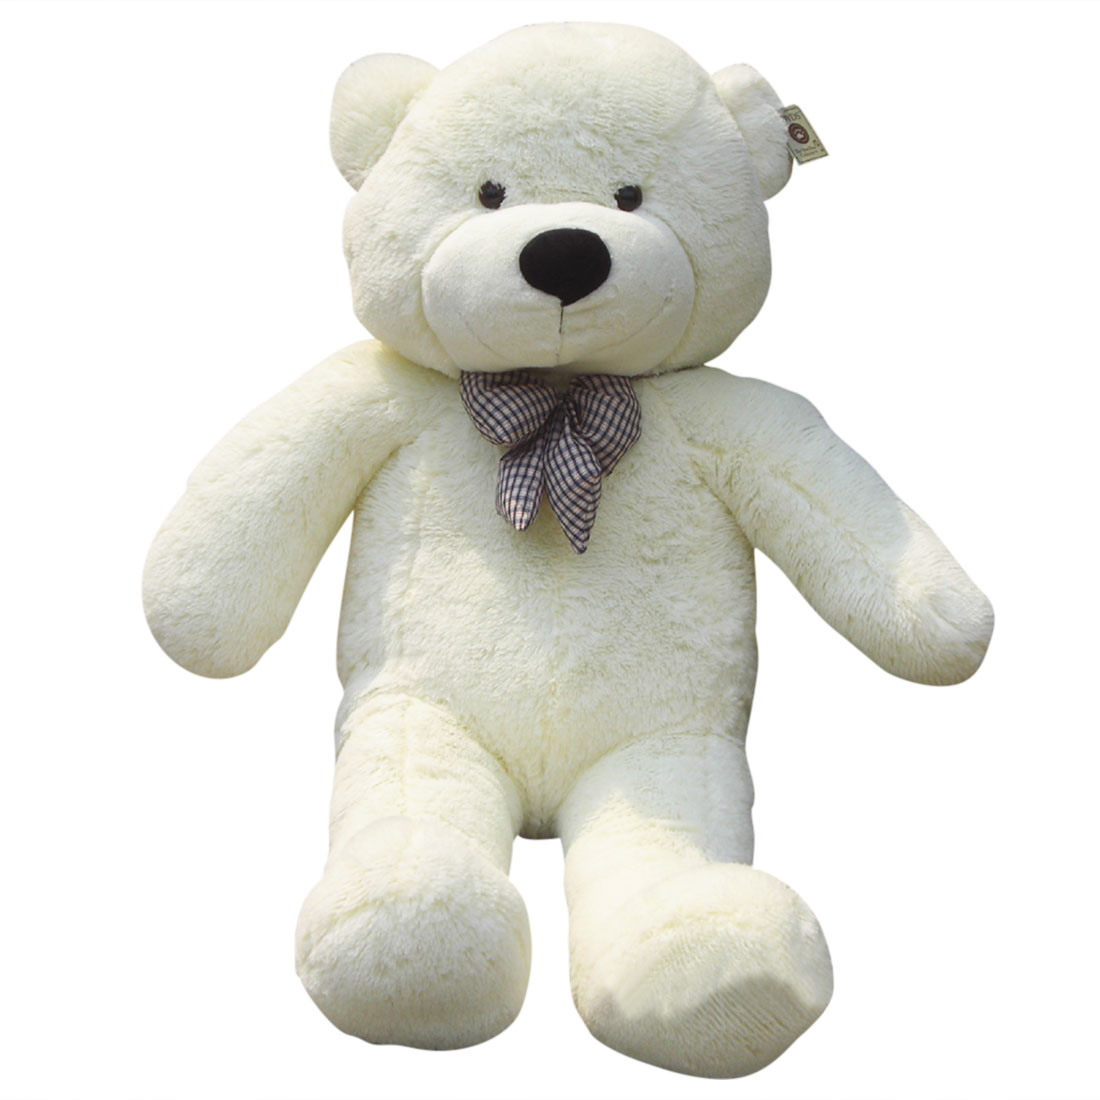 1.2M Giant Cuddly Stuffed Animals Plush Teddy Bear Toy Doll White by